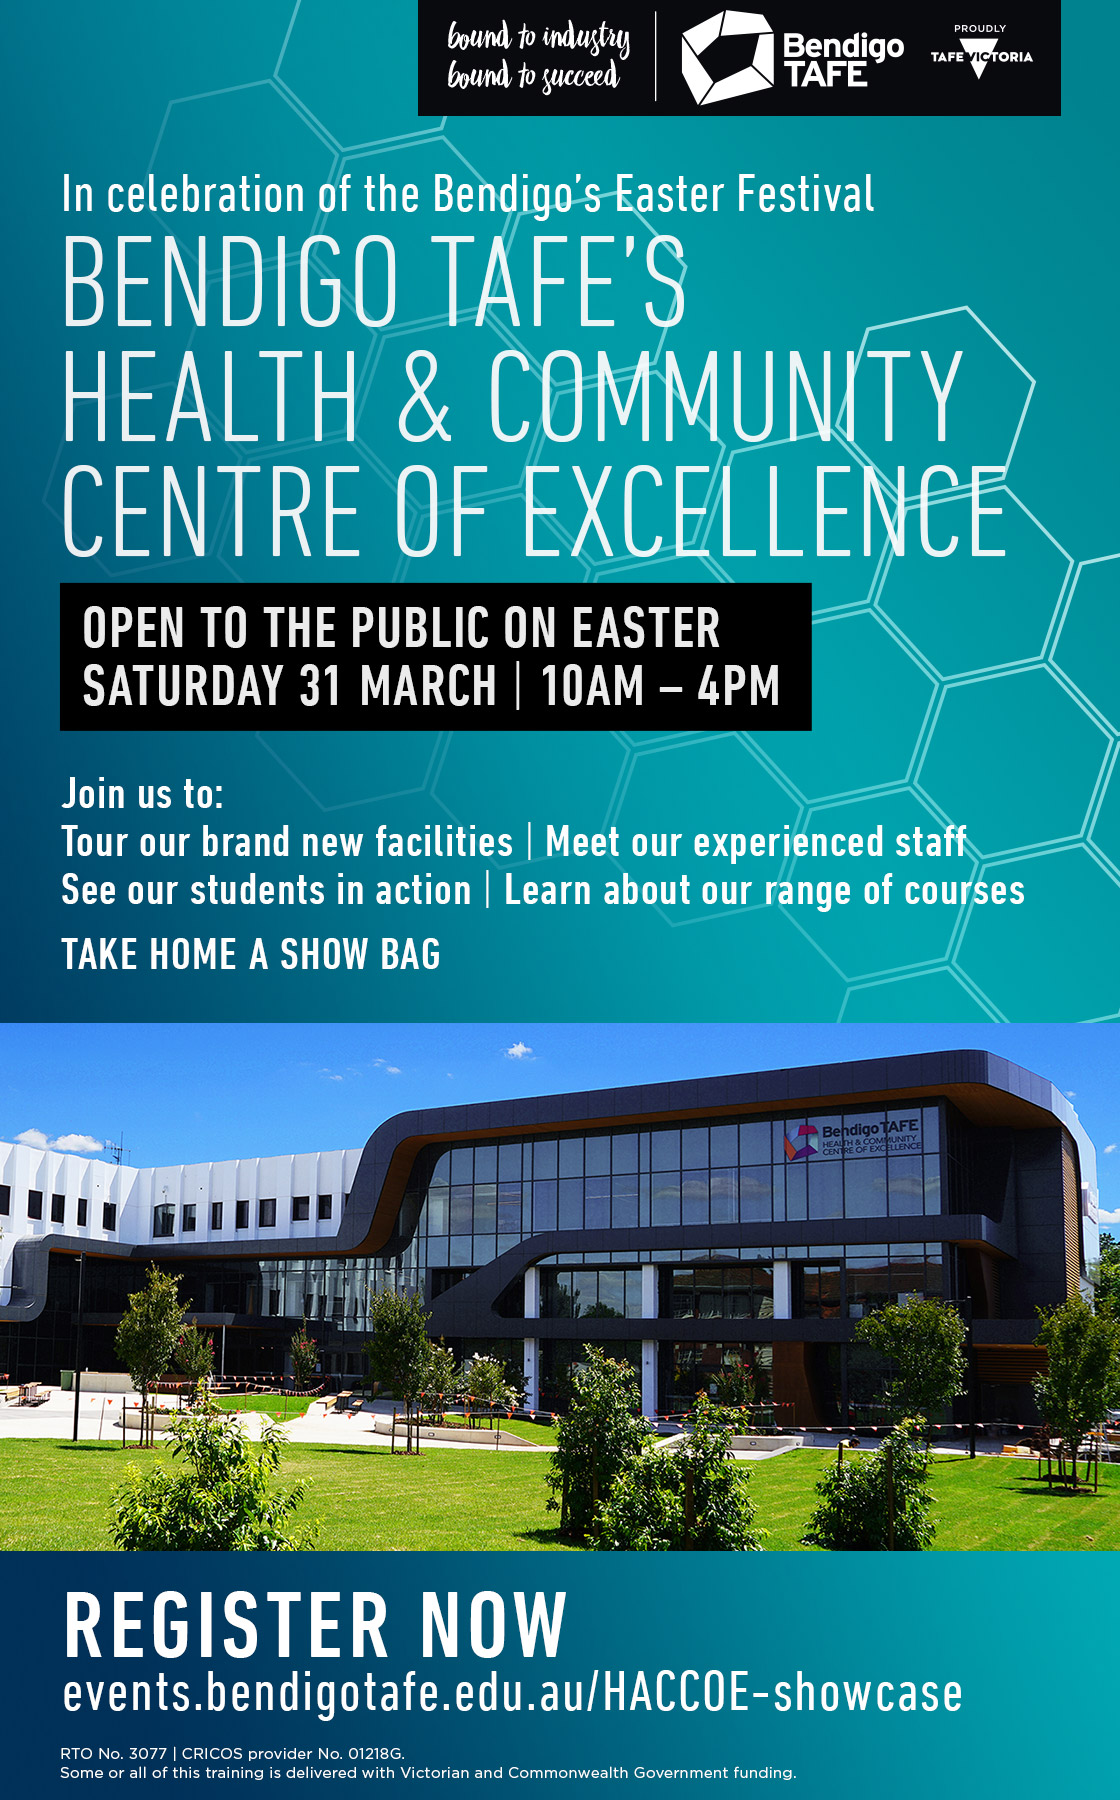 Bendigo Tafes Health & Community Centre of Excellence open 31st of March 10 am to 4pm